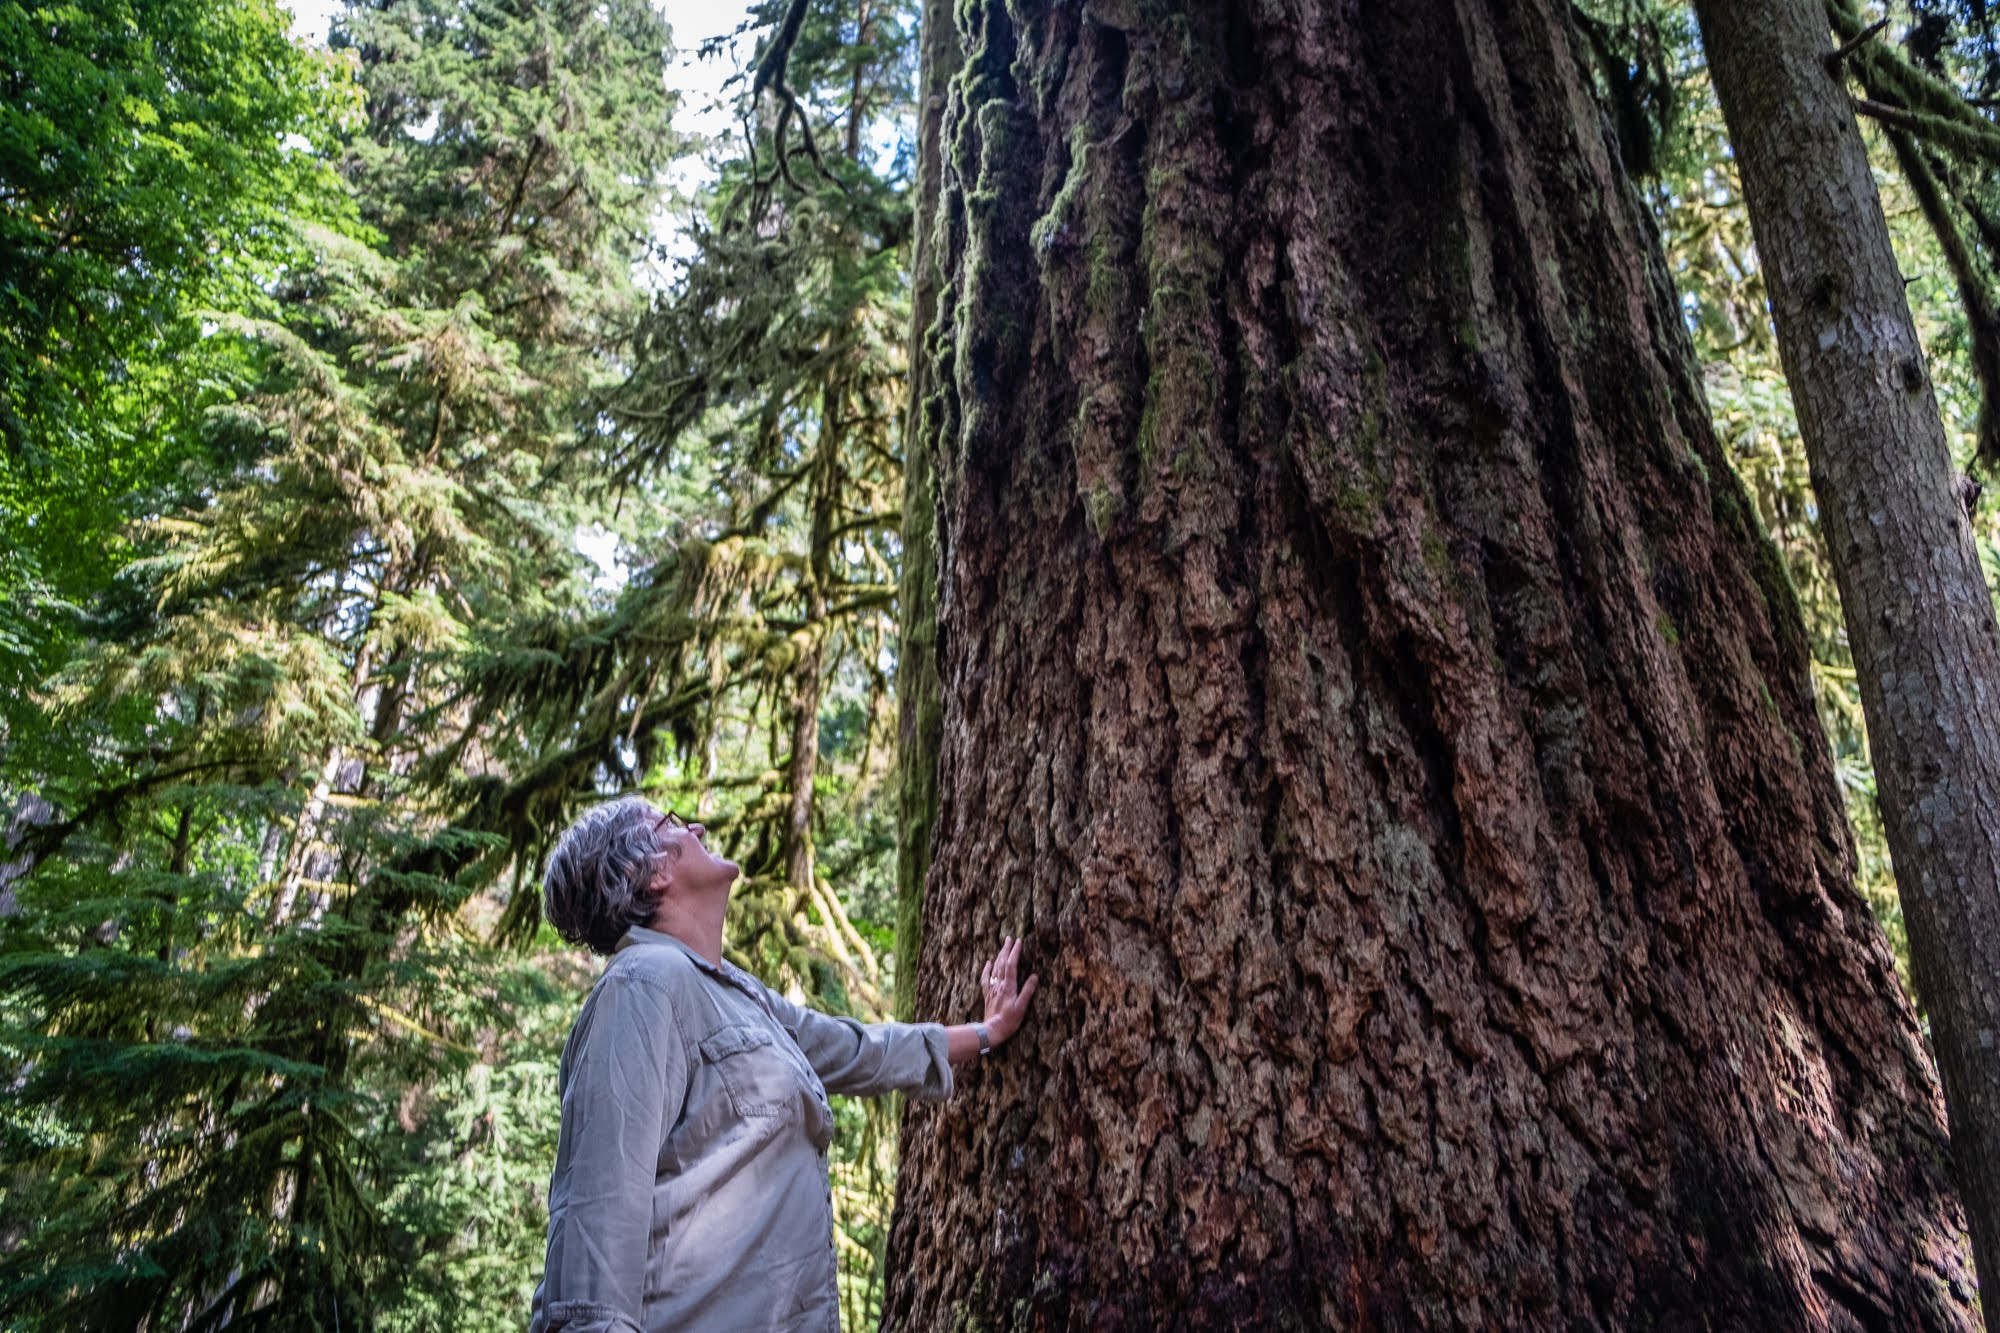 cathedral grove, old growth, ancient forests, forest